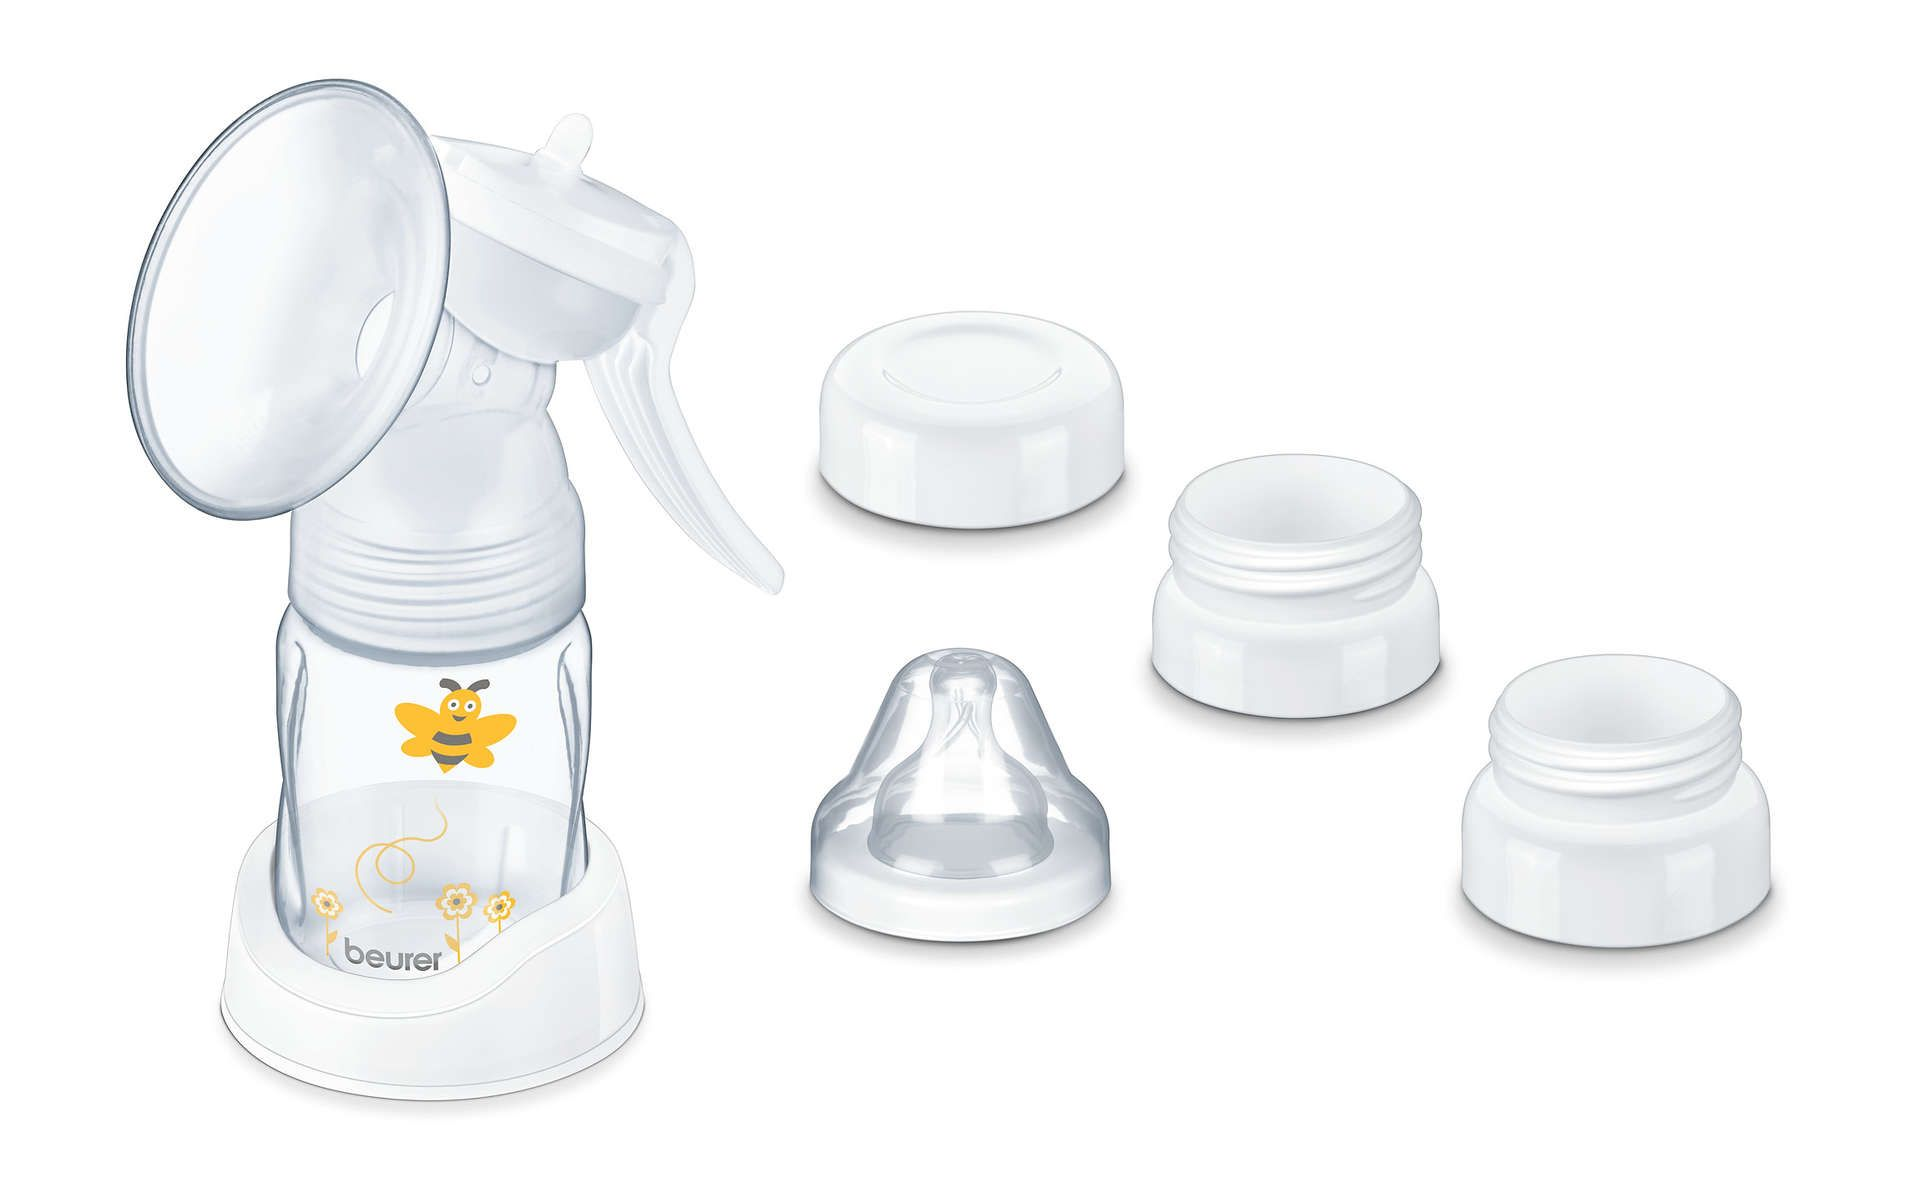 beurer-manual-breast-pump-by-15-kuwait-online